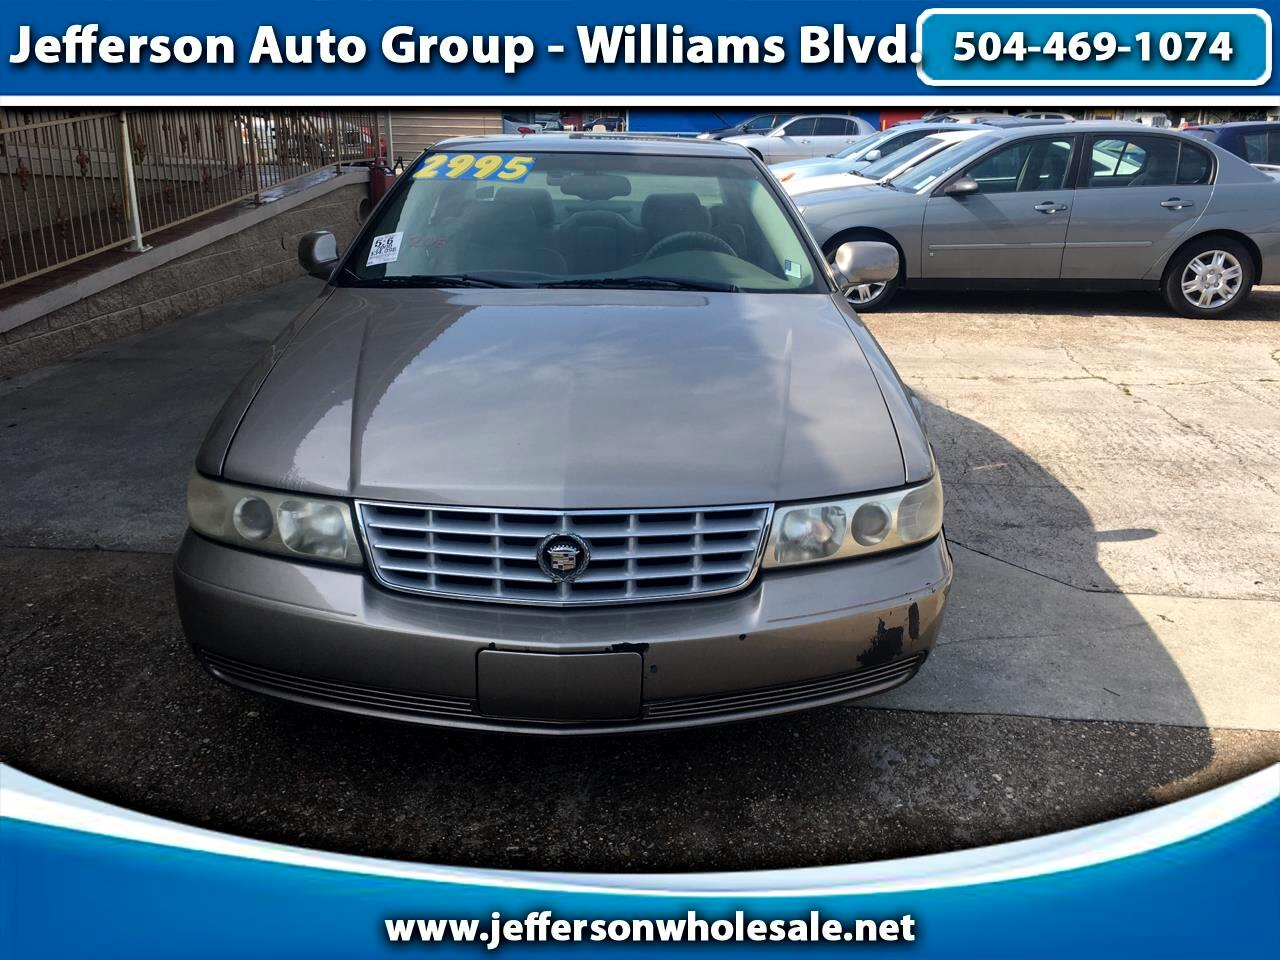 2000 Cadillac Seville 4dr Luxury Sdn SLS